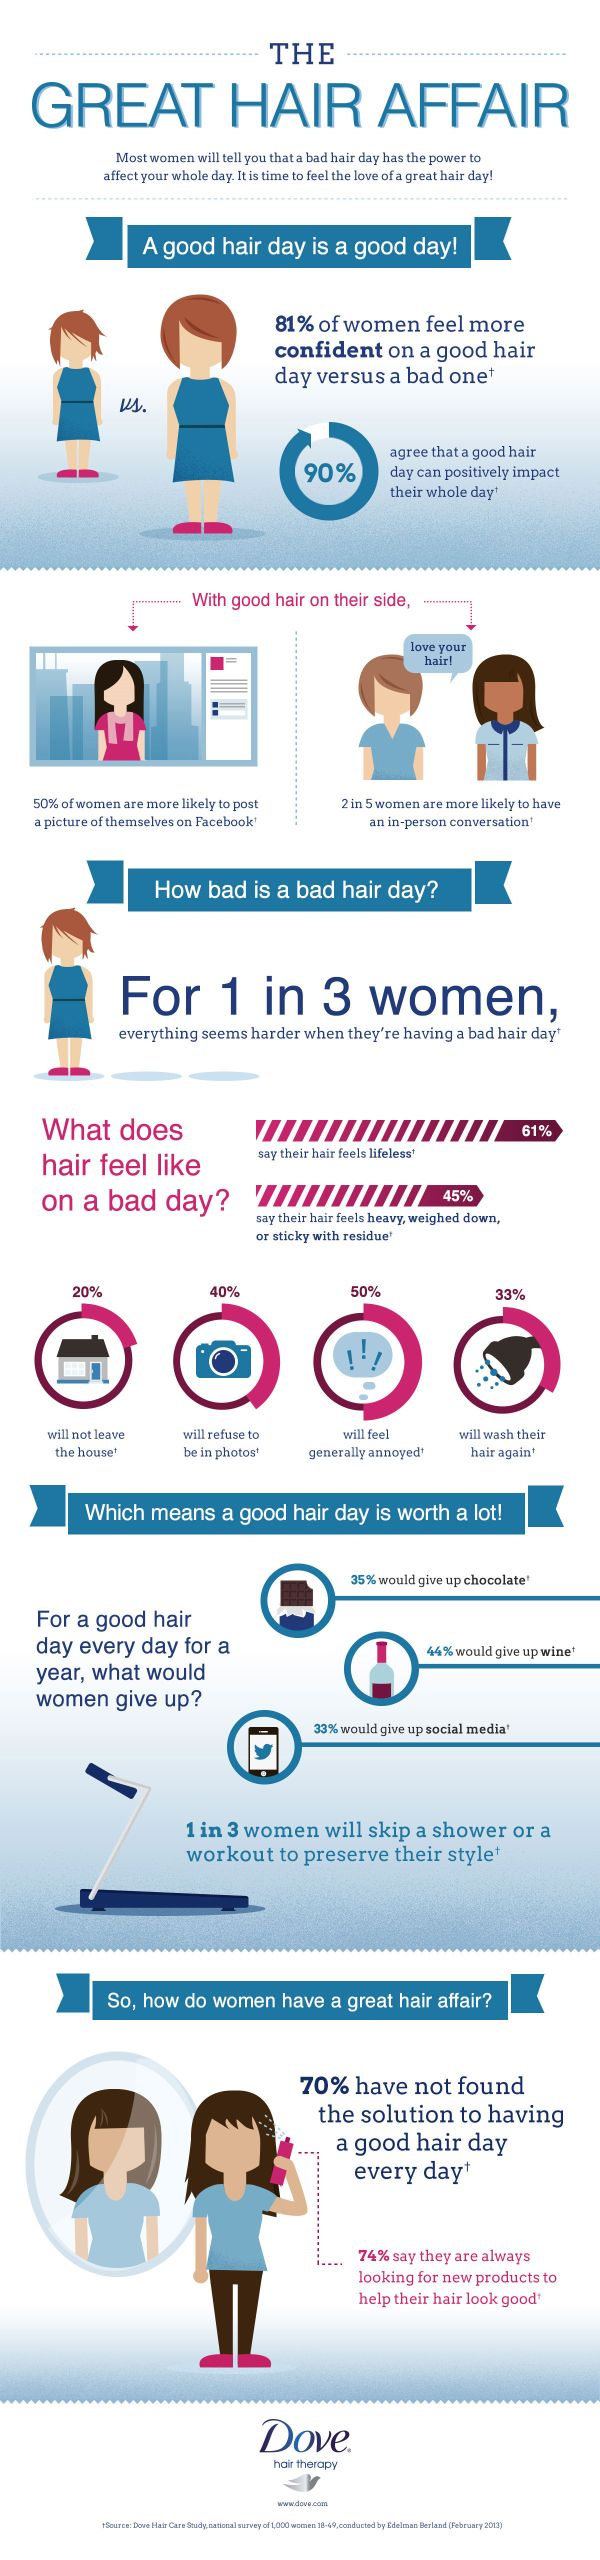 A Dove Hair Care Study in infographic form. Who knew great hair did so much for your day?